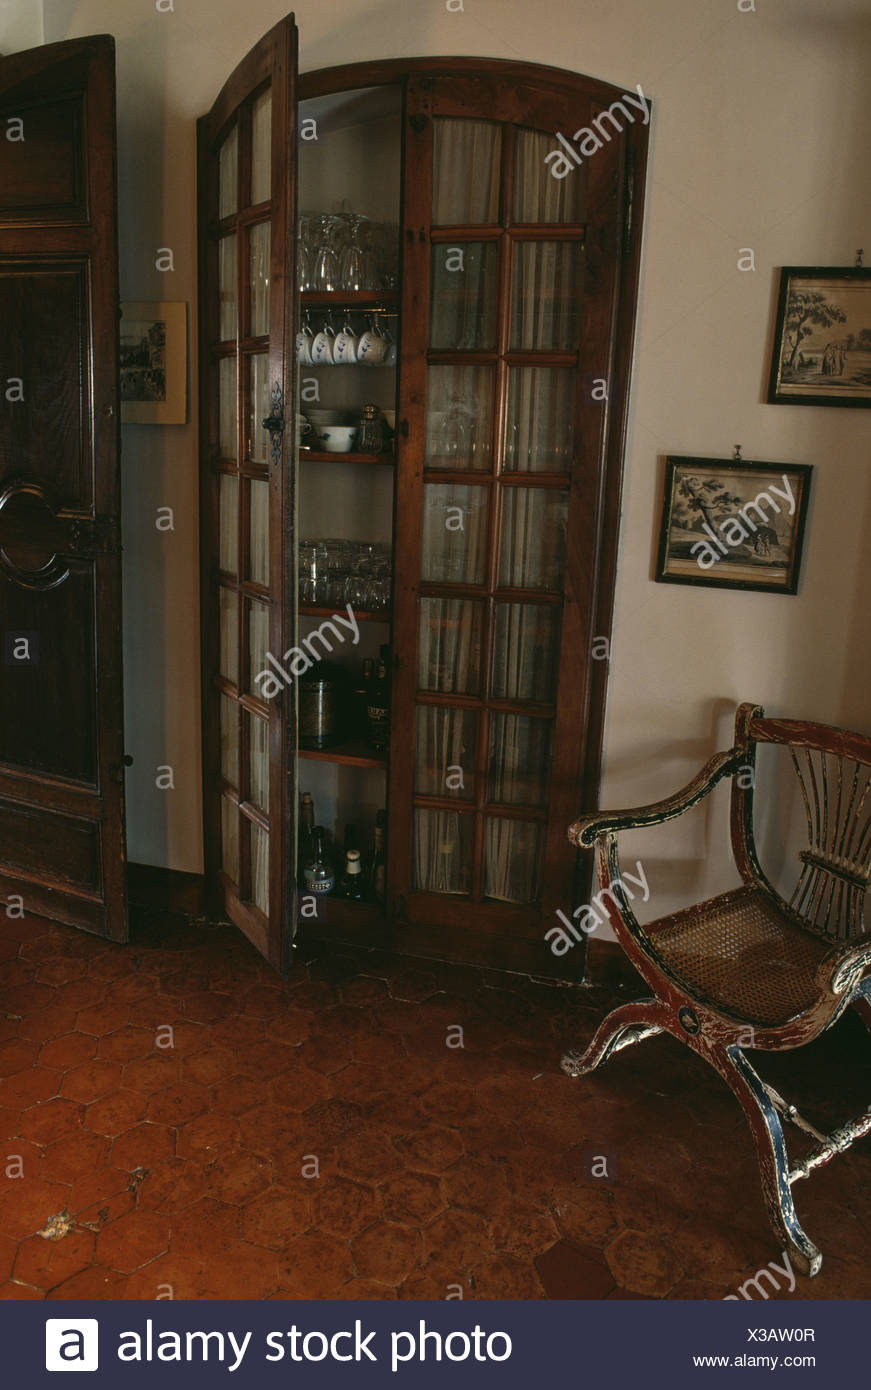 China and glasses stored in antique cupboard with glazed doors in  traditional country hall - China And Glasses Stored In Antique Cupboard With Glazed Doors In